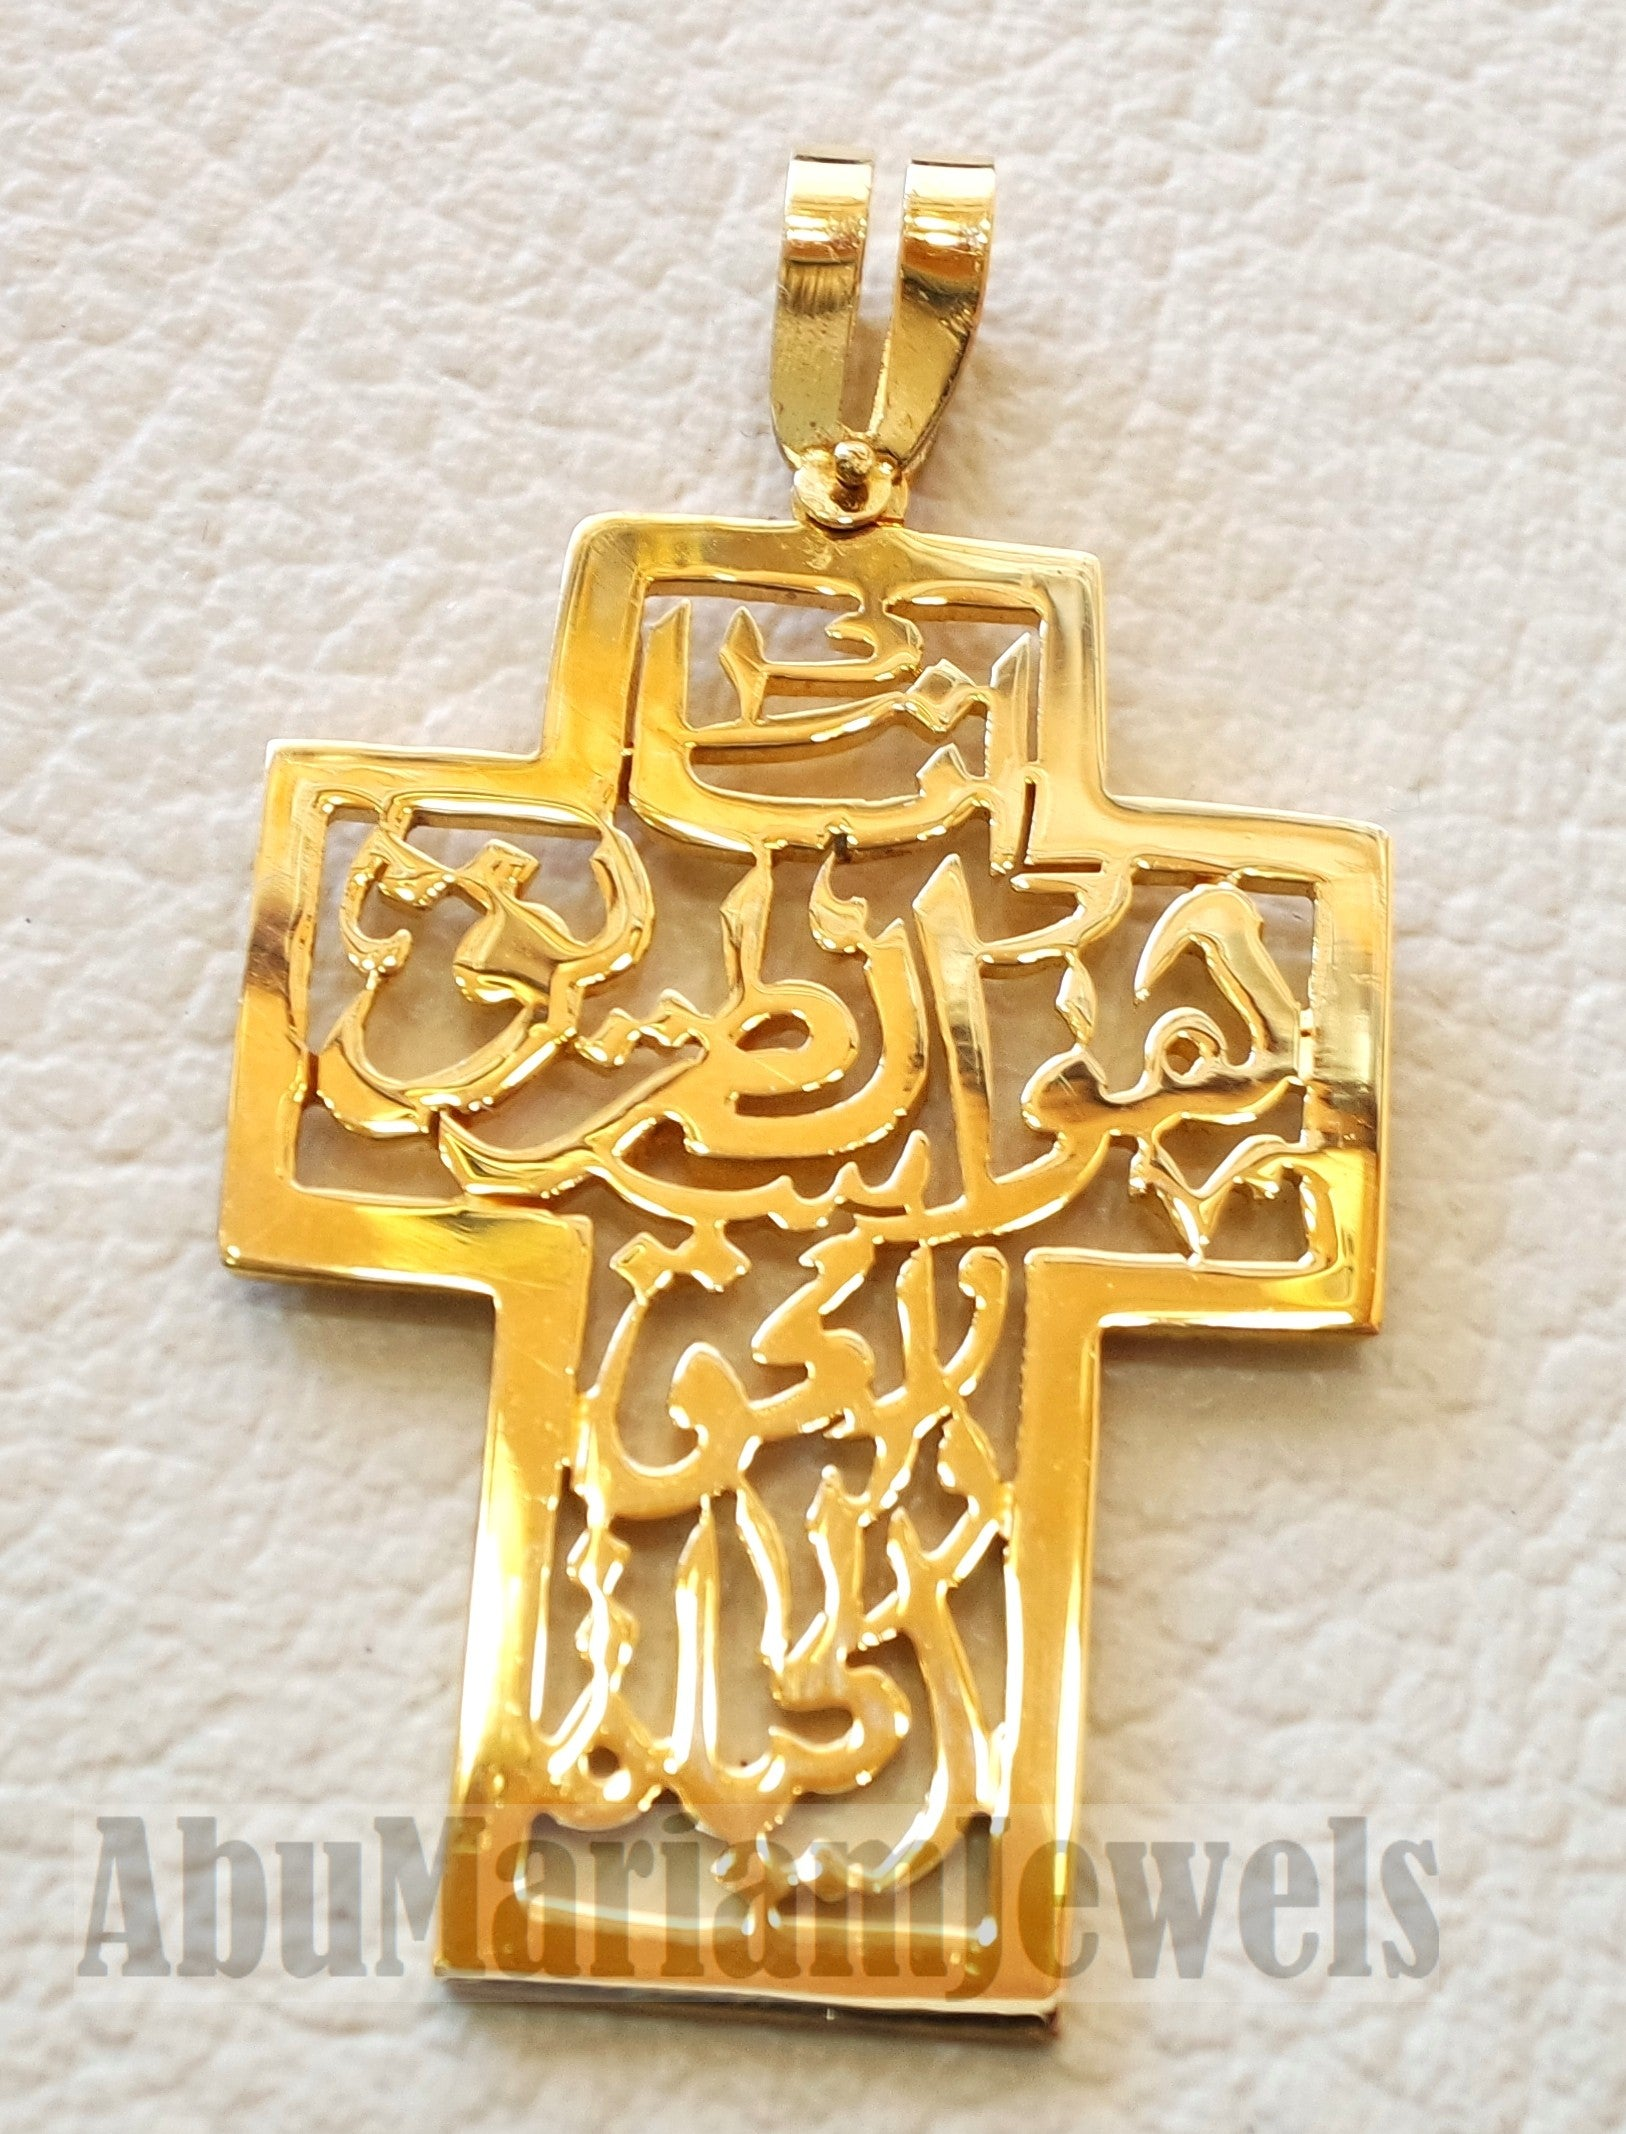 Arabic calligraphy cross pendant 18 k gold jewelry catholic orthodox symbol christianity handmade heavy thick fast shipping